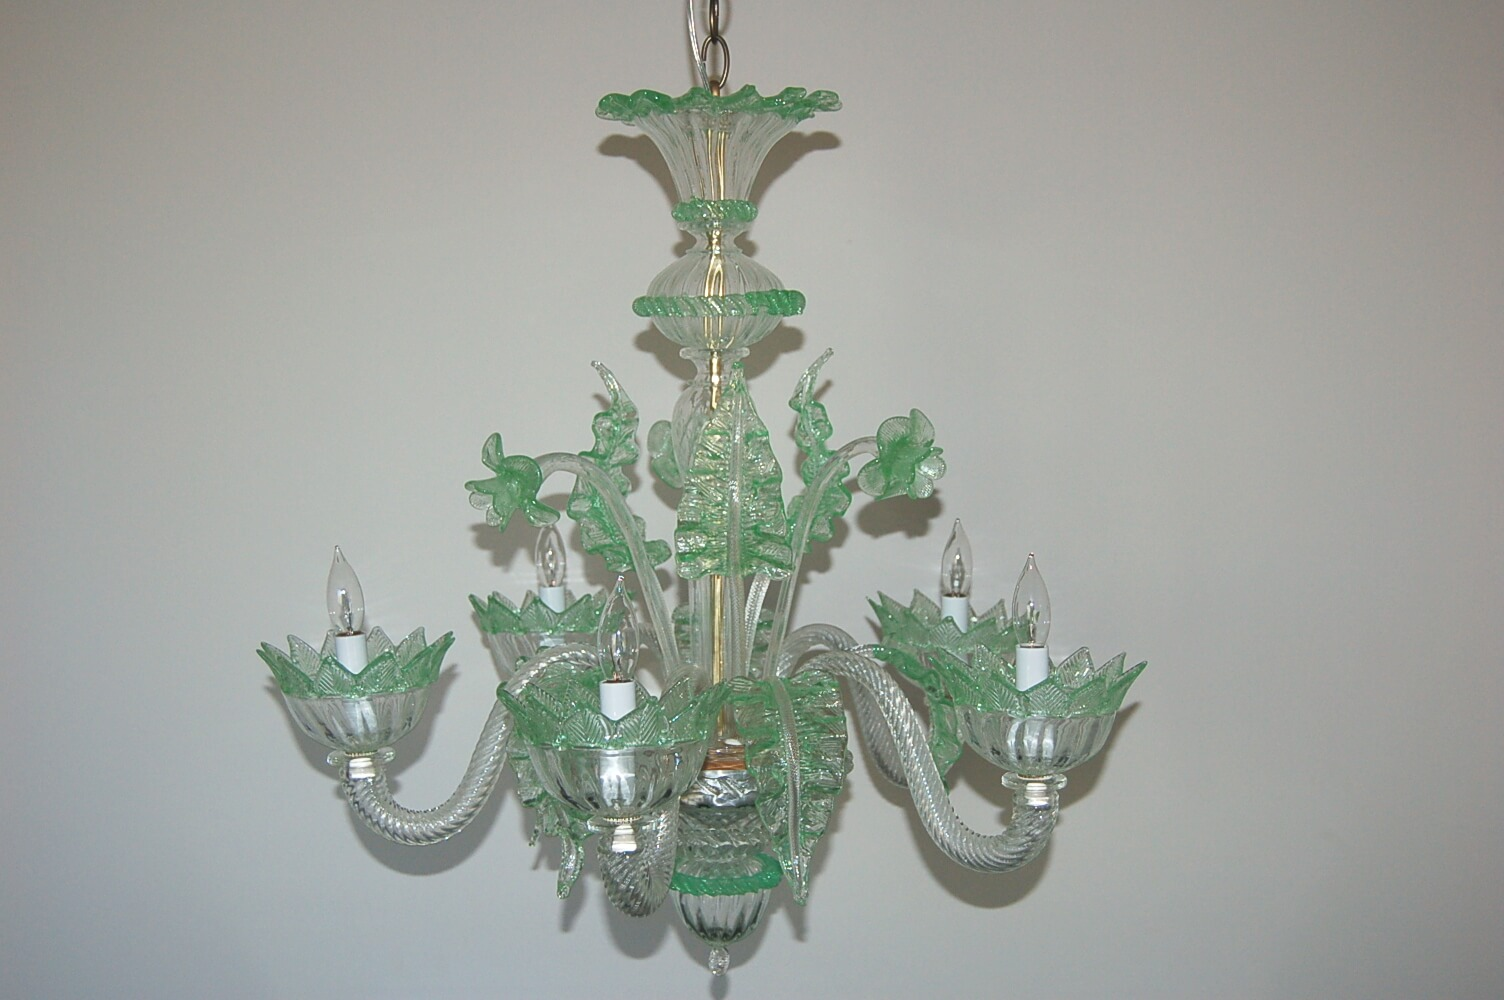 Vintage murano glass chandelier of clear opaline with green accents vintage murano glass chandelier of clear opaline with green accents mozeypictures Image collections